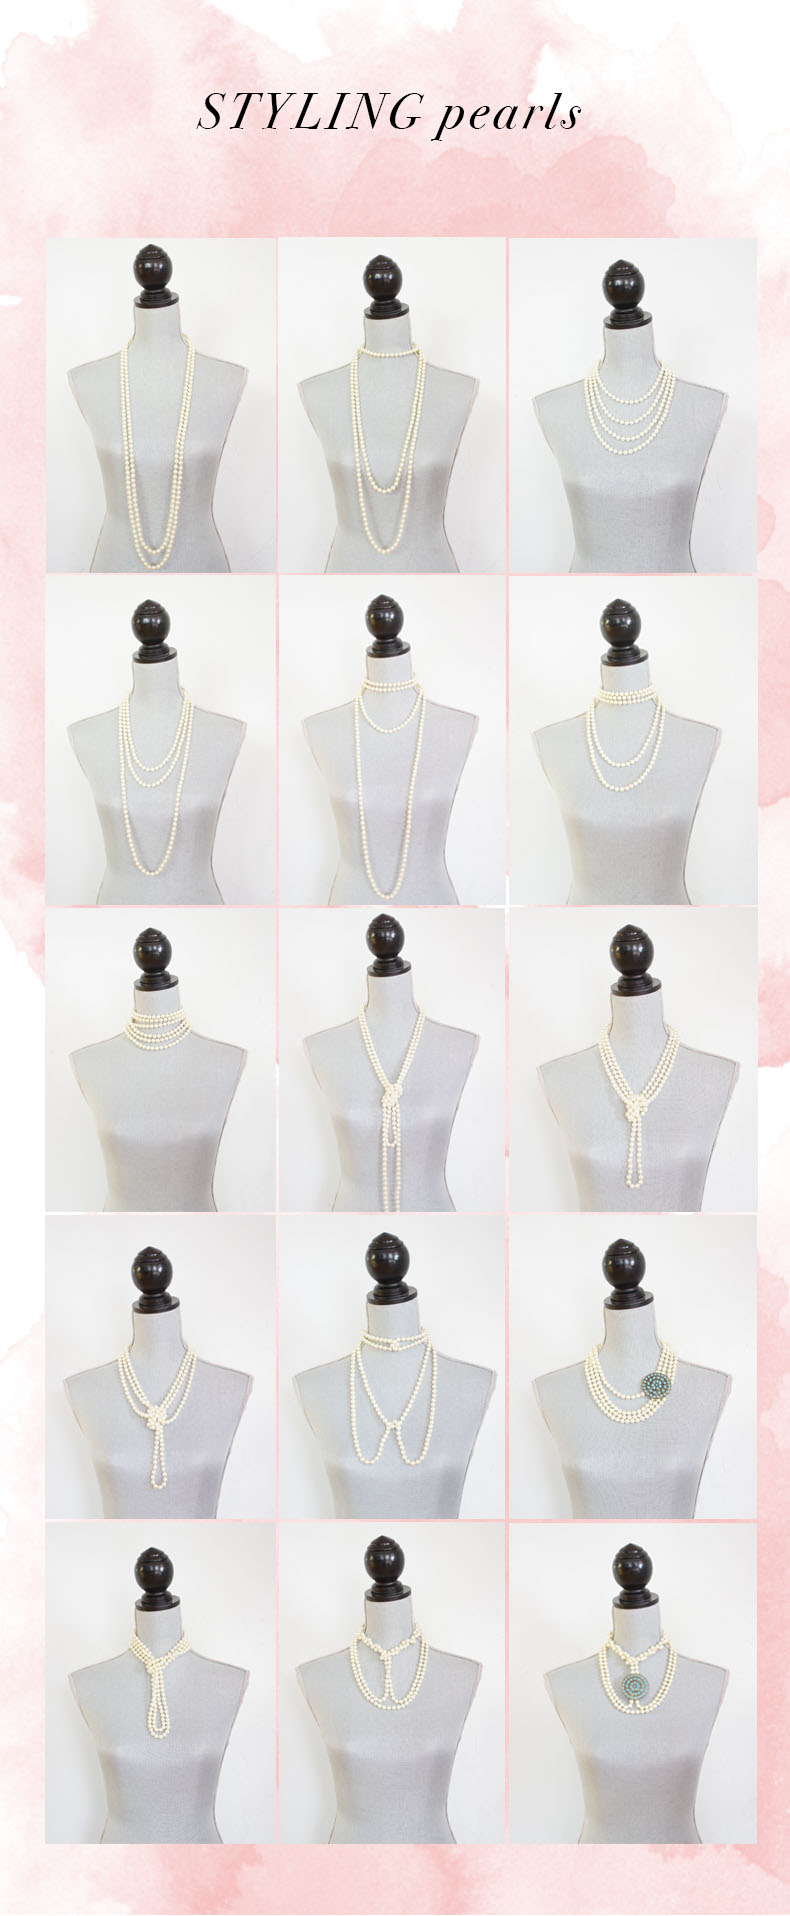 STYLING PEARLS